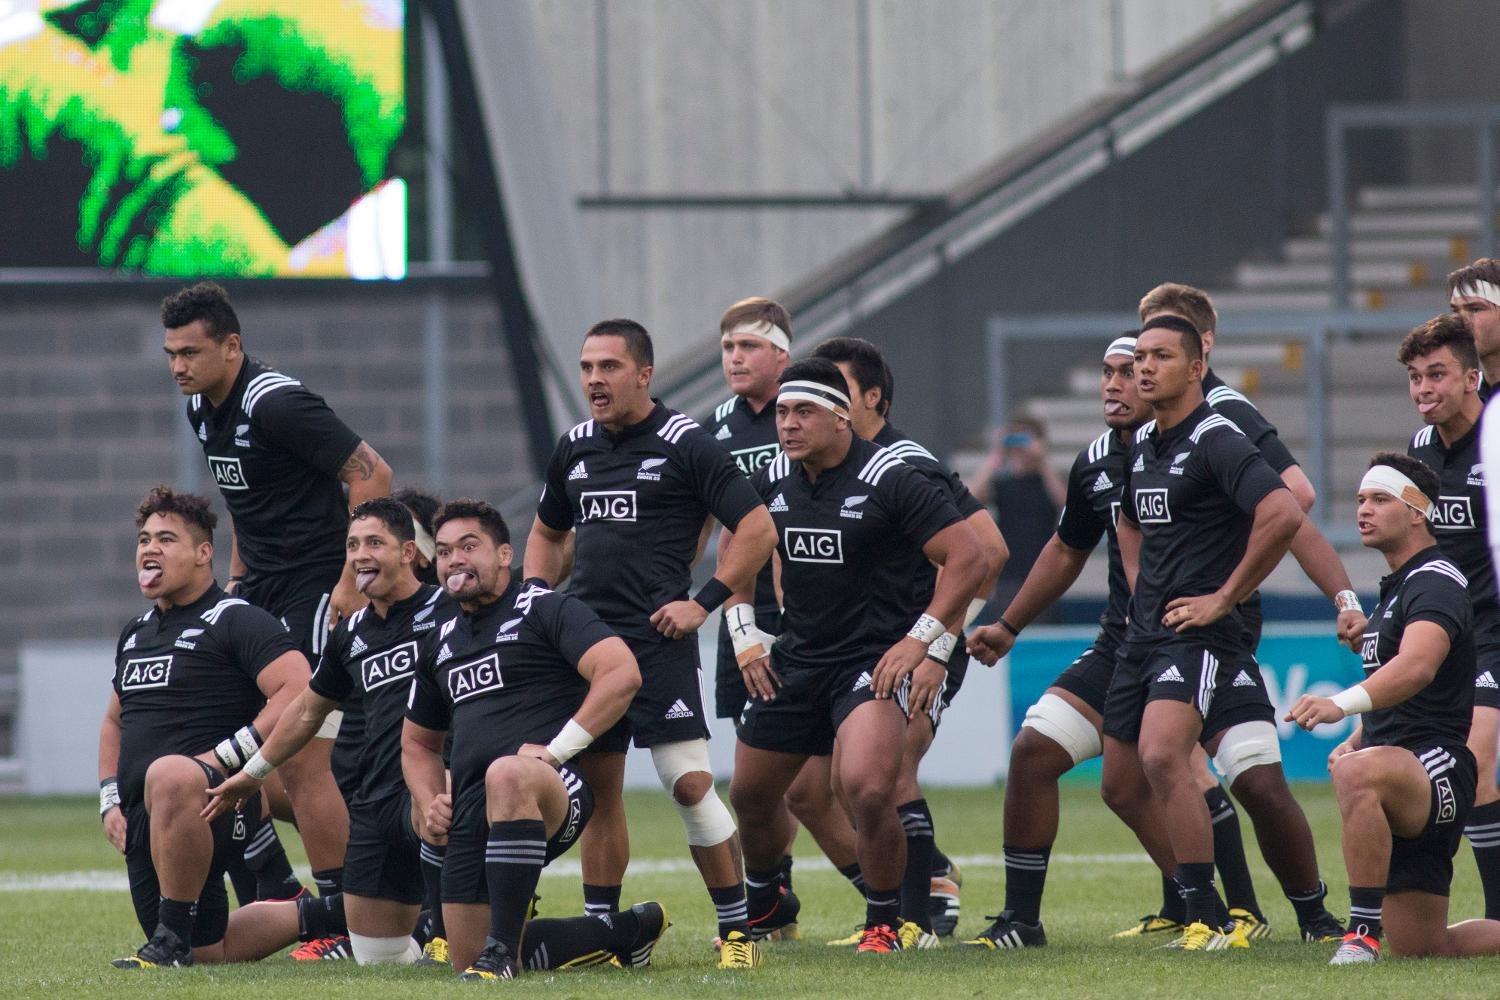 New Zealand Perform The Haka Ahead Of Their Opening Match At The World Rugby U20 Championship 2016 Against Georgia At The Aj Bell Stadium On 7 June 2016 Avec Images Rugby